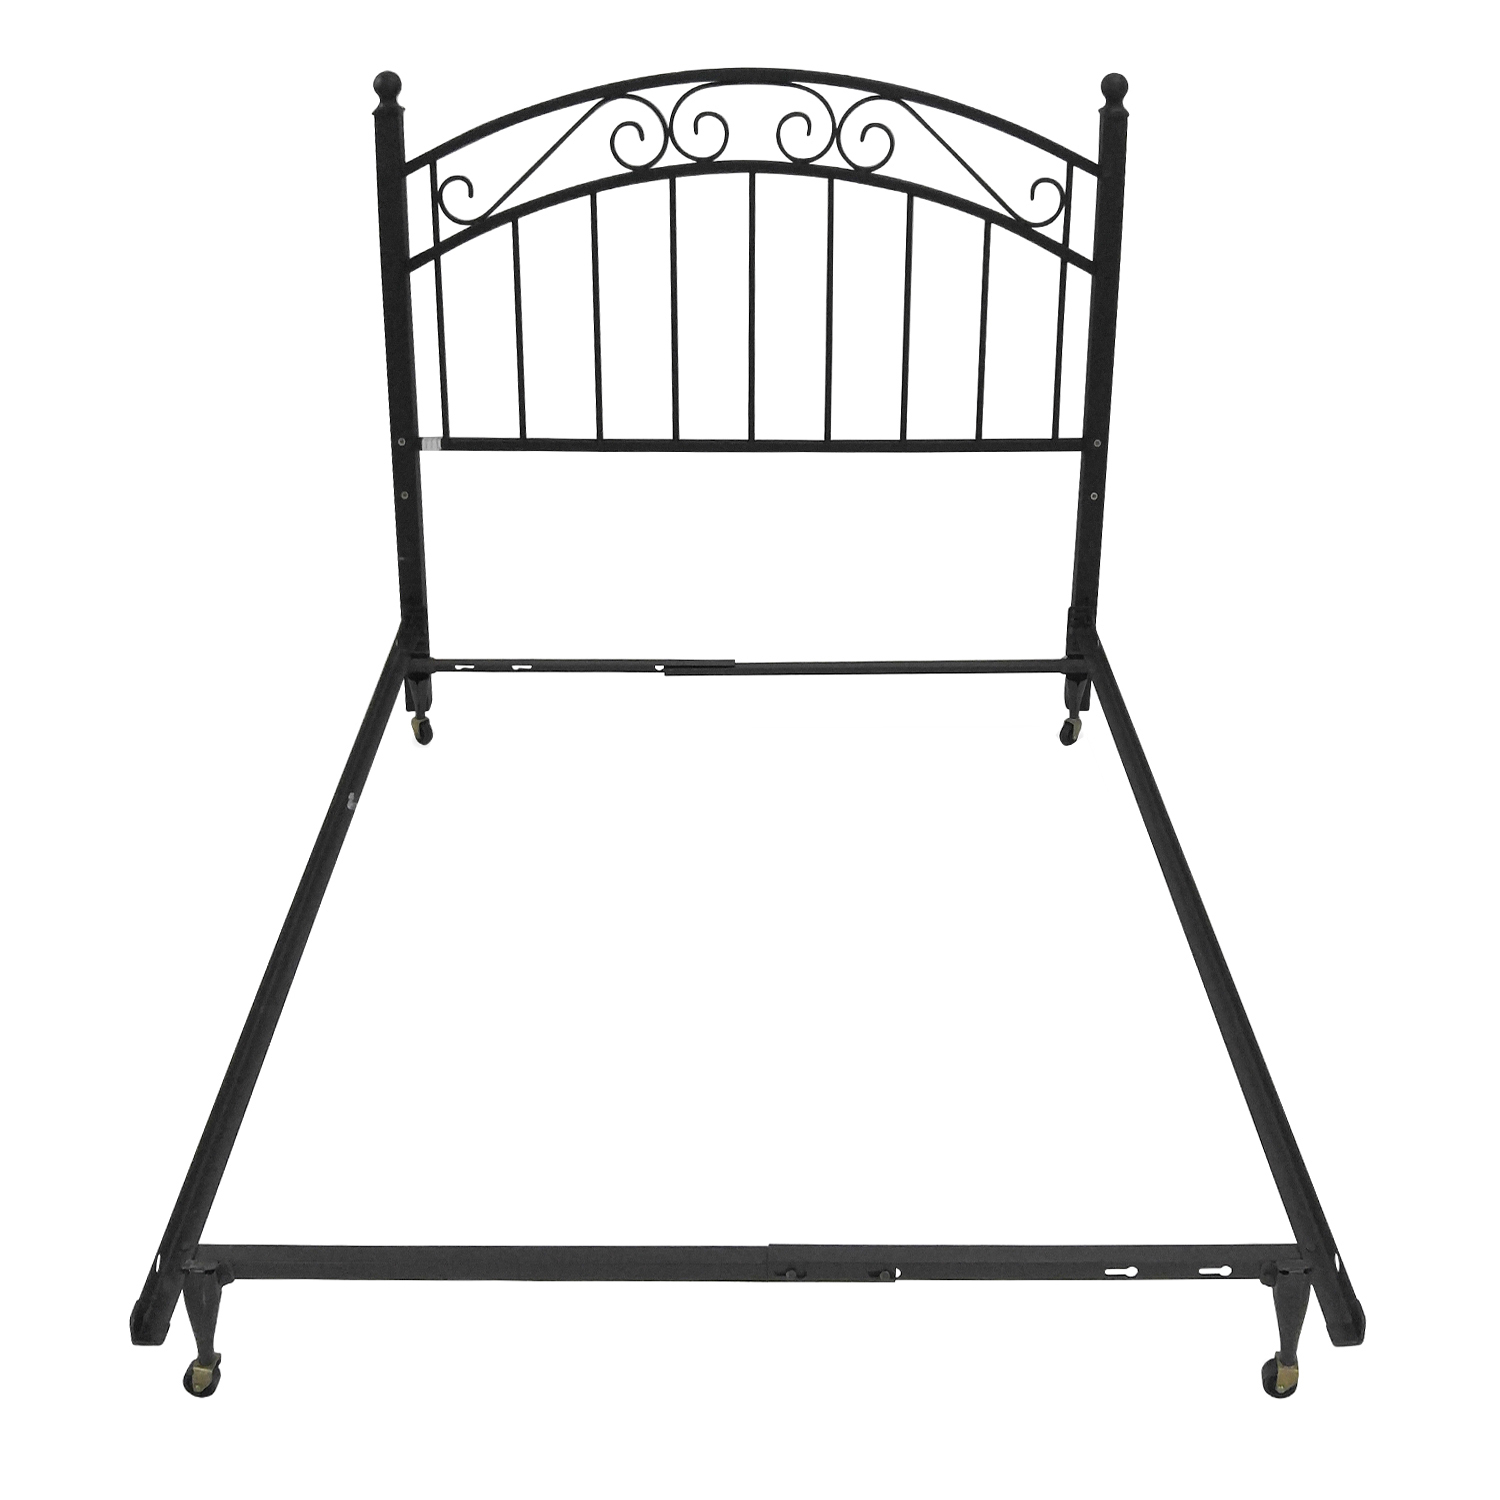 Crate and Barrel Full Iron Bed Frame and Headboard Crate and Barrel